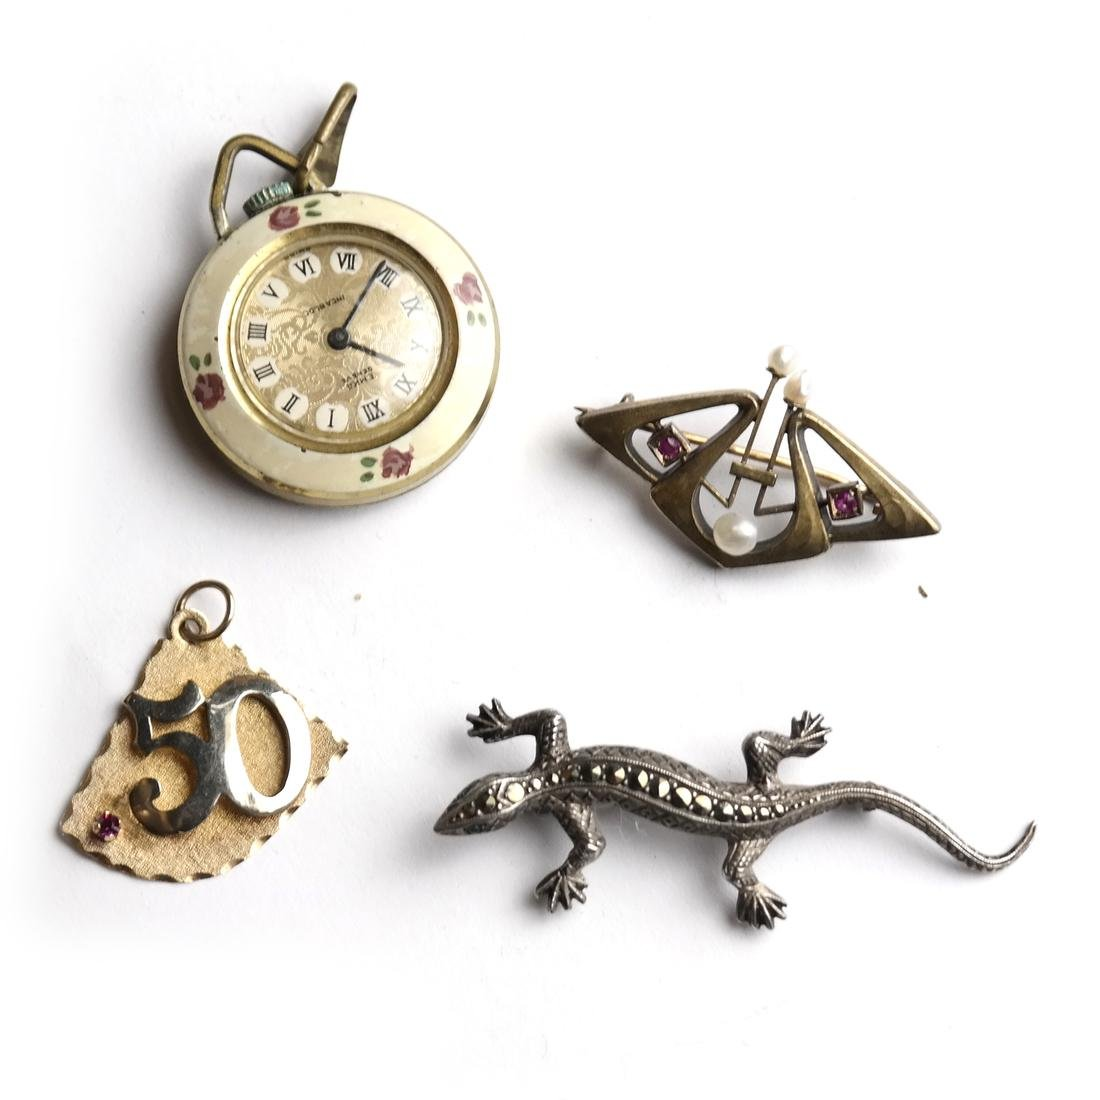 4 Items: Pin, Brooch, Watch, Lizard